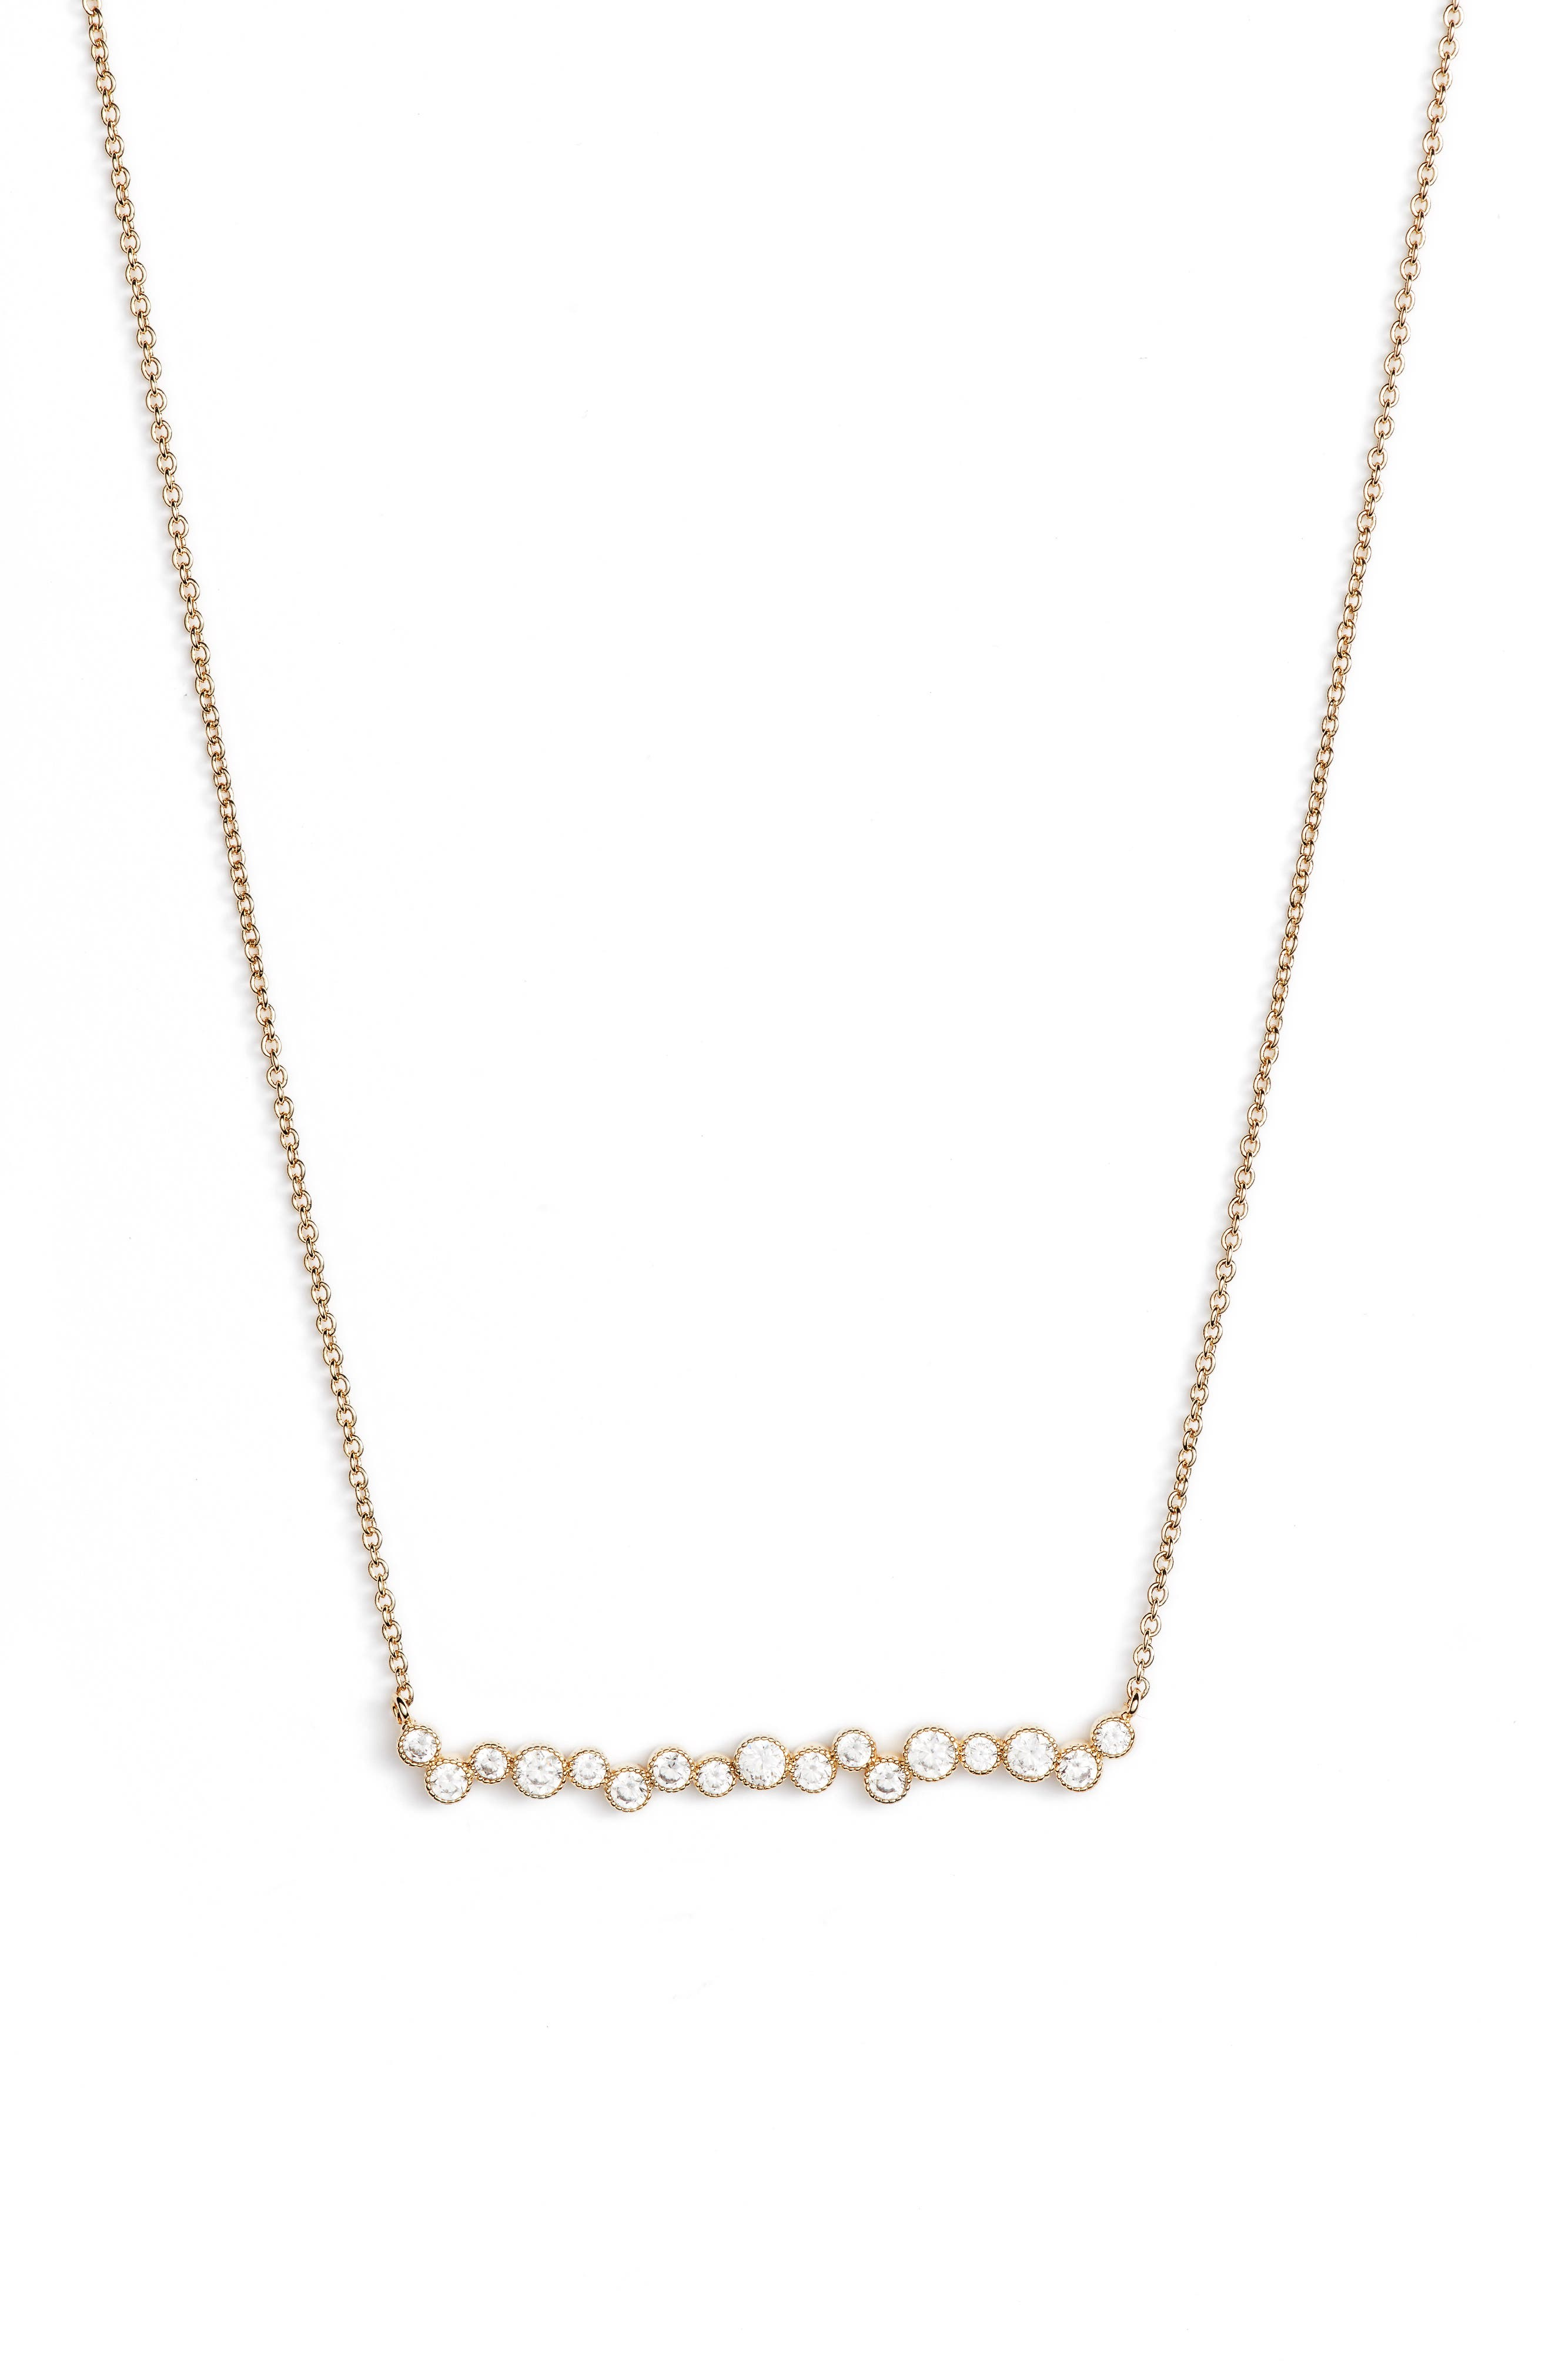 Jules Smith Formation Necklace